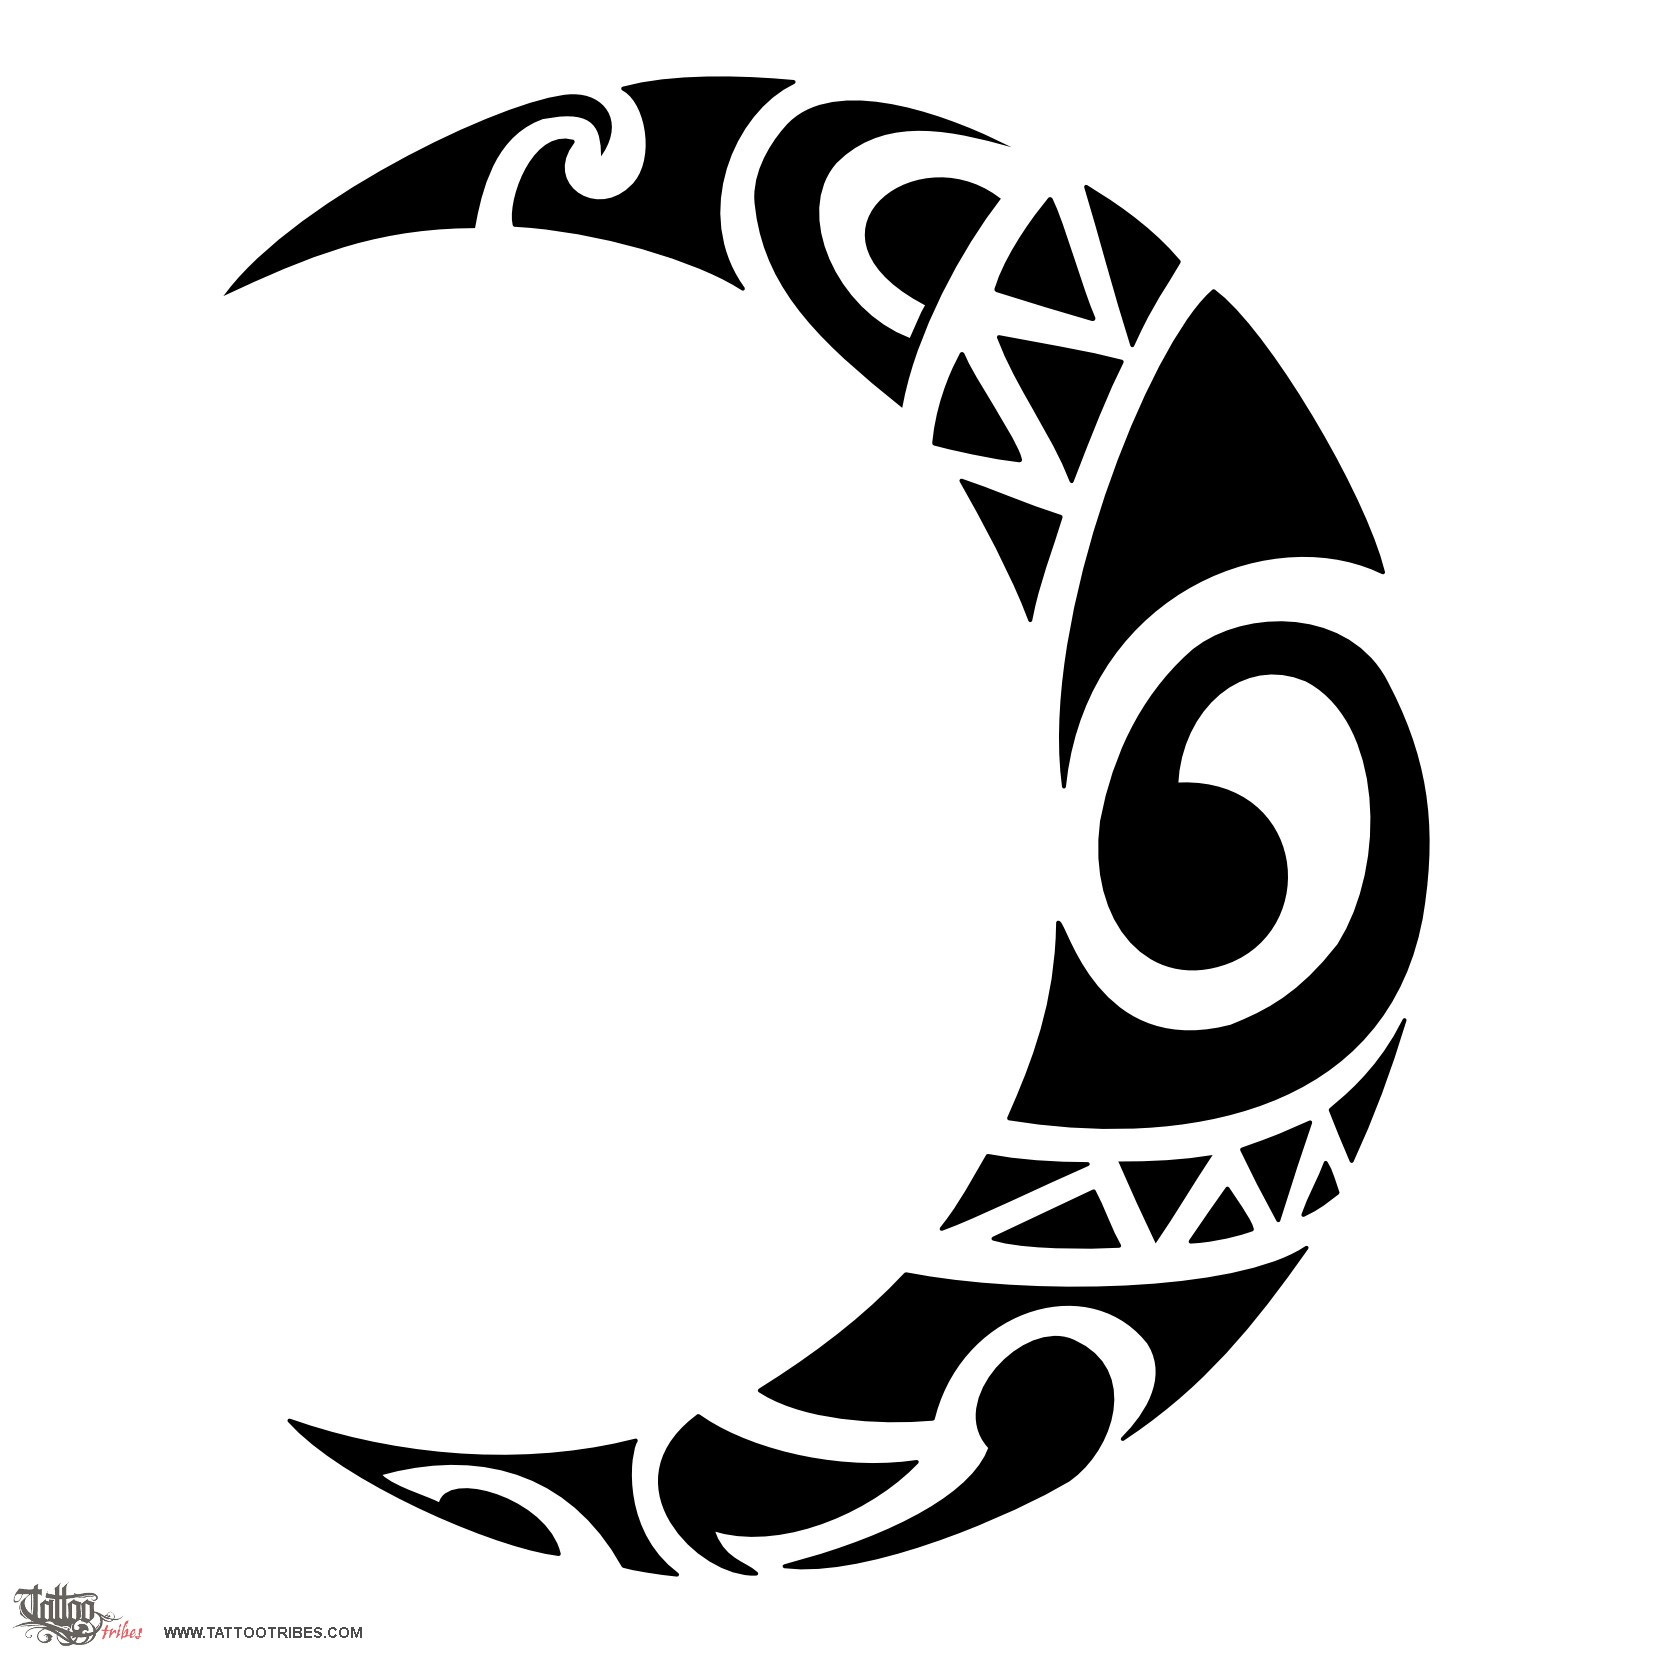 43 Tribal Moon Tattoos